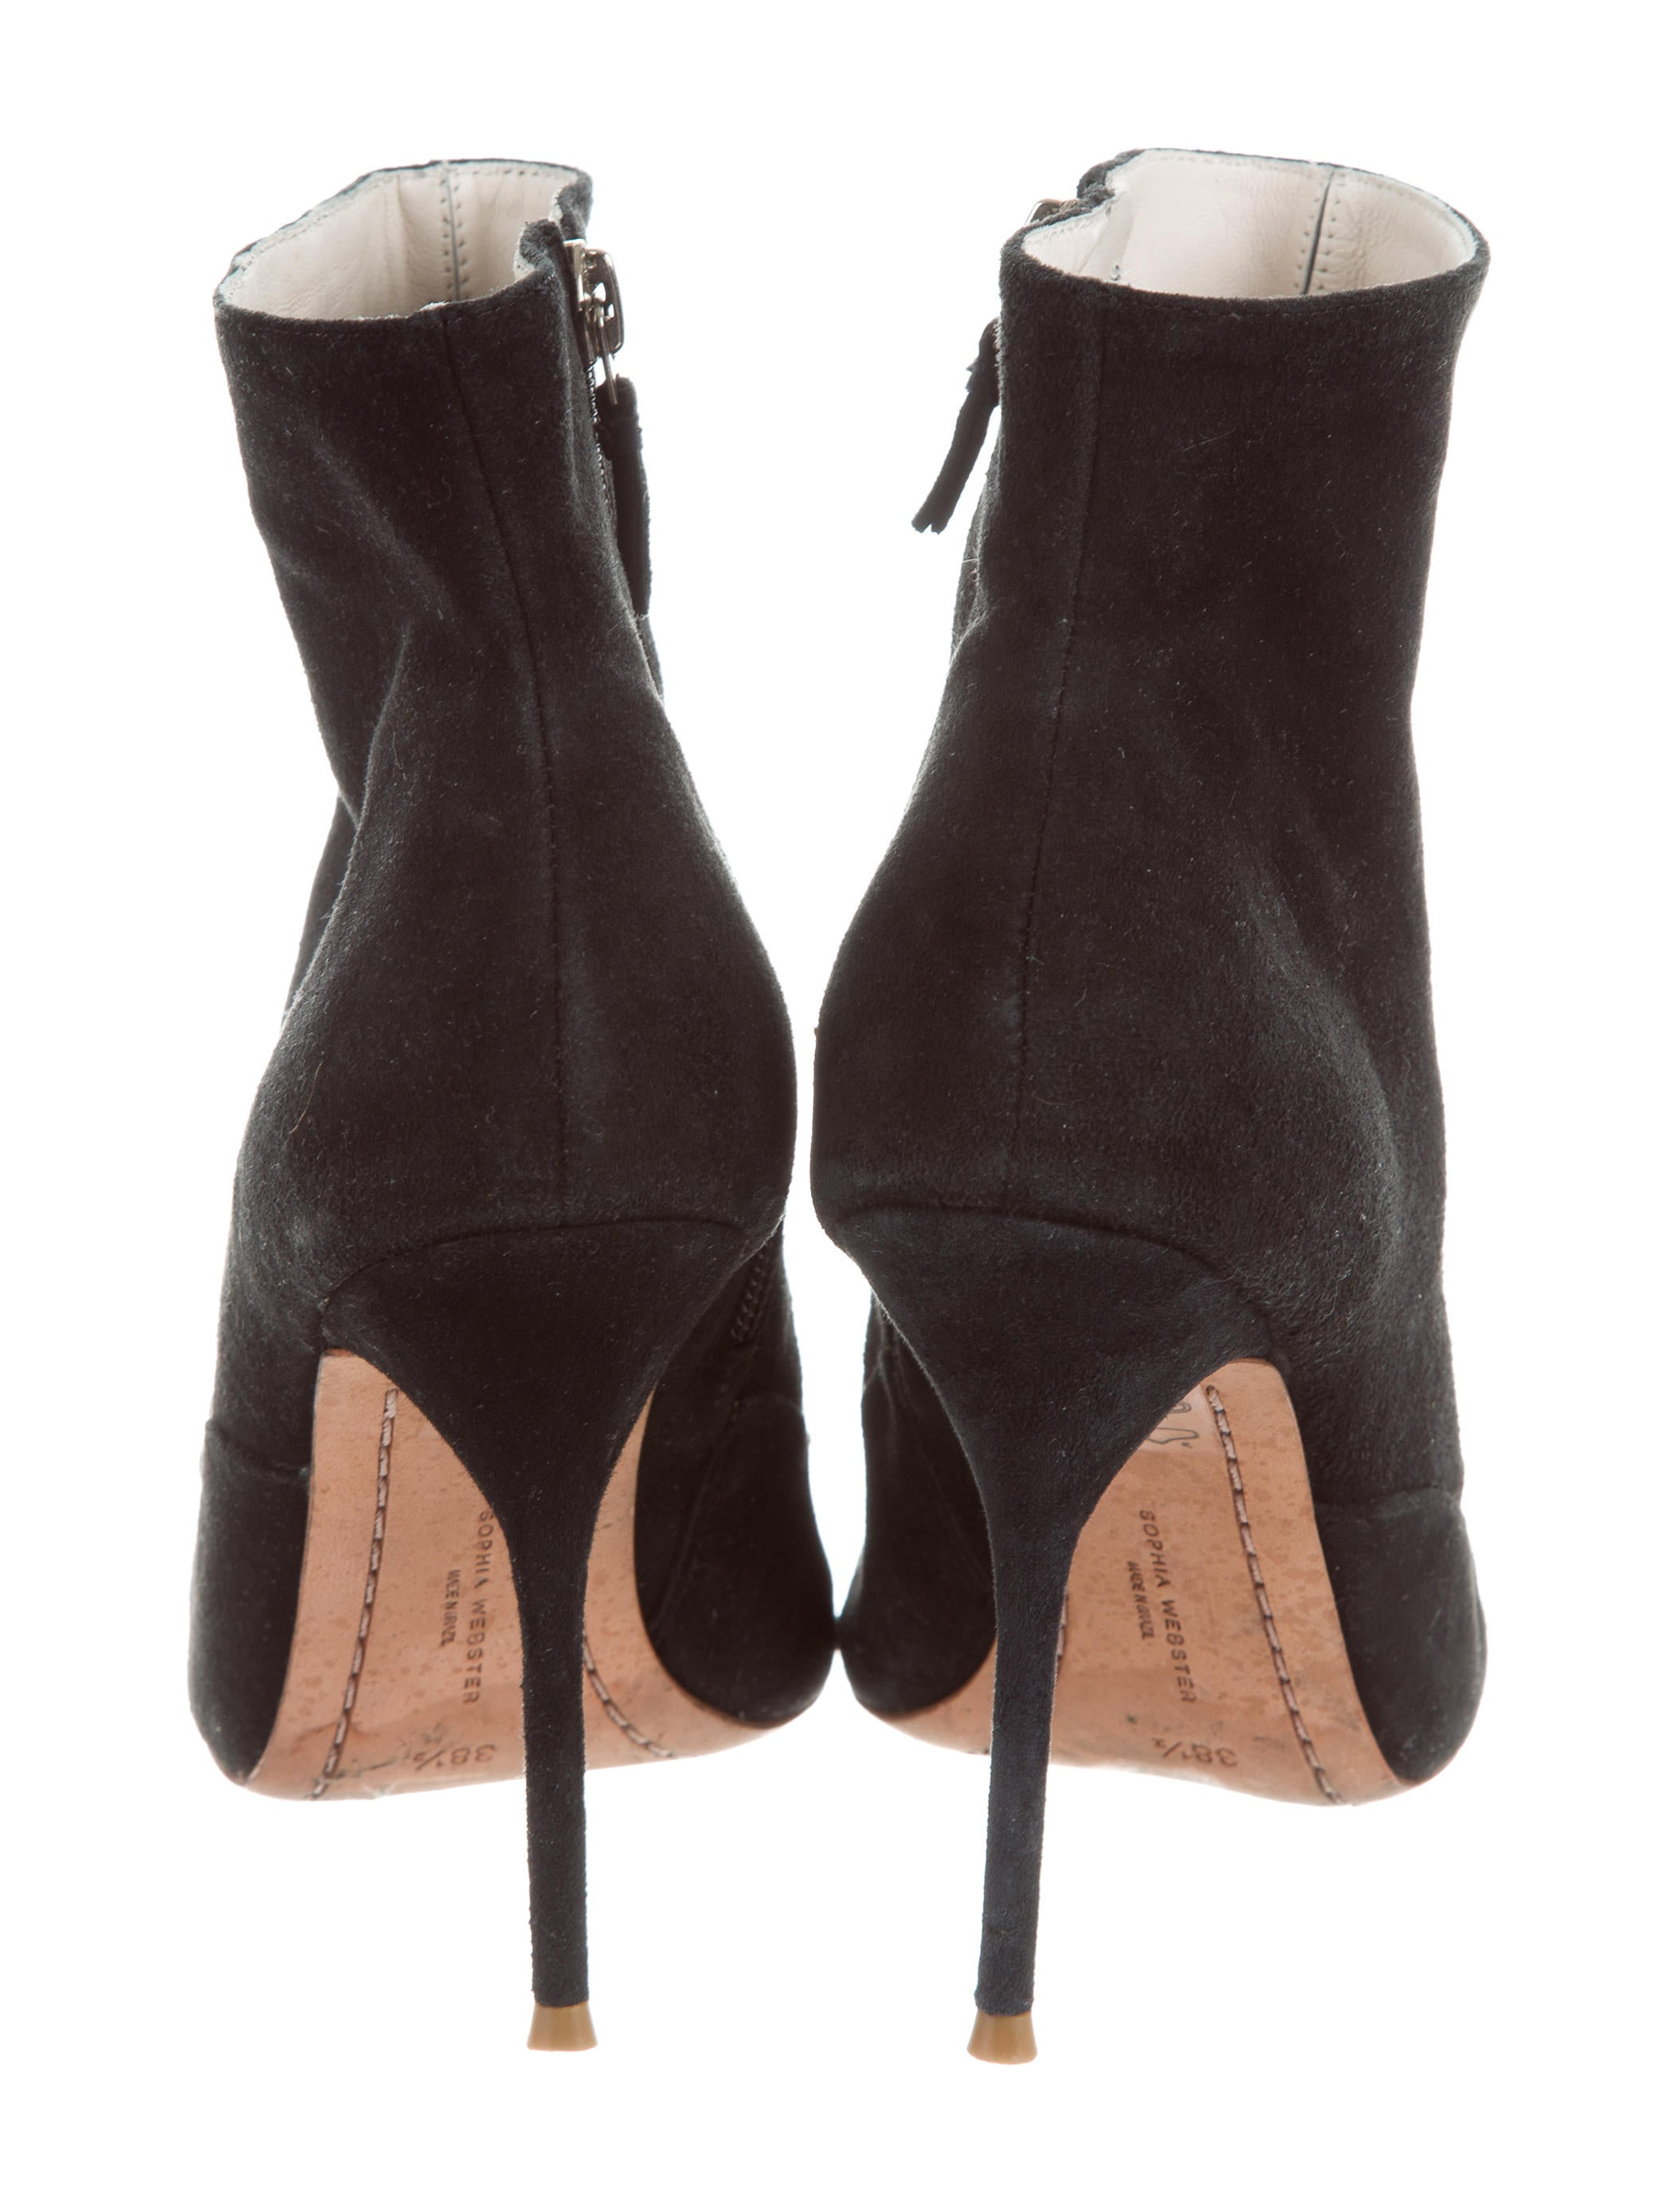 Sophia Webster Giselle 1 Ankle Boots